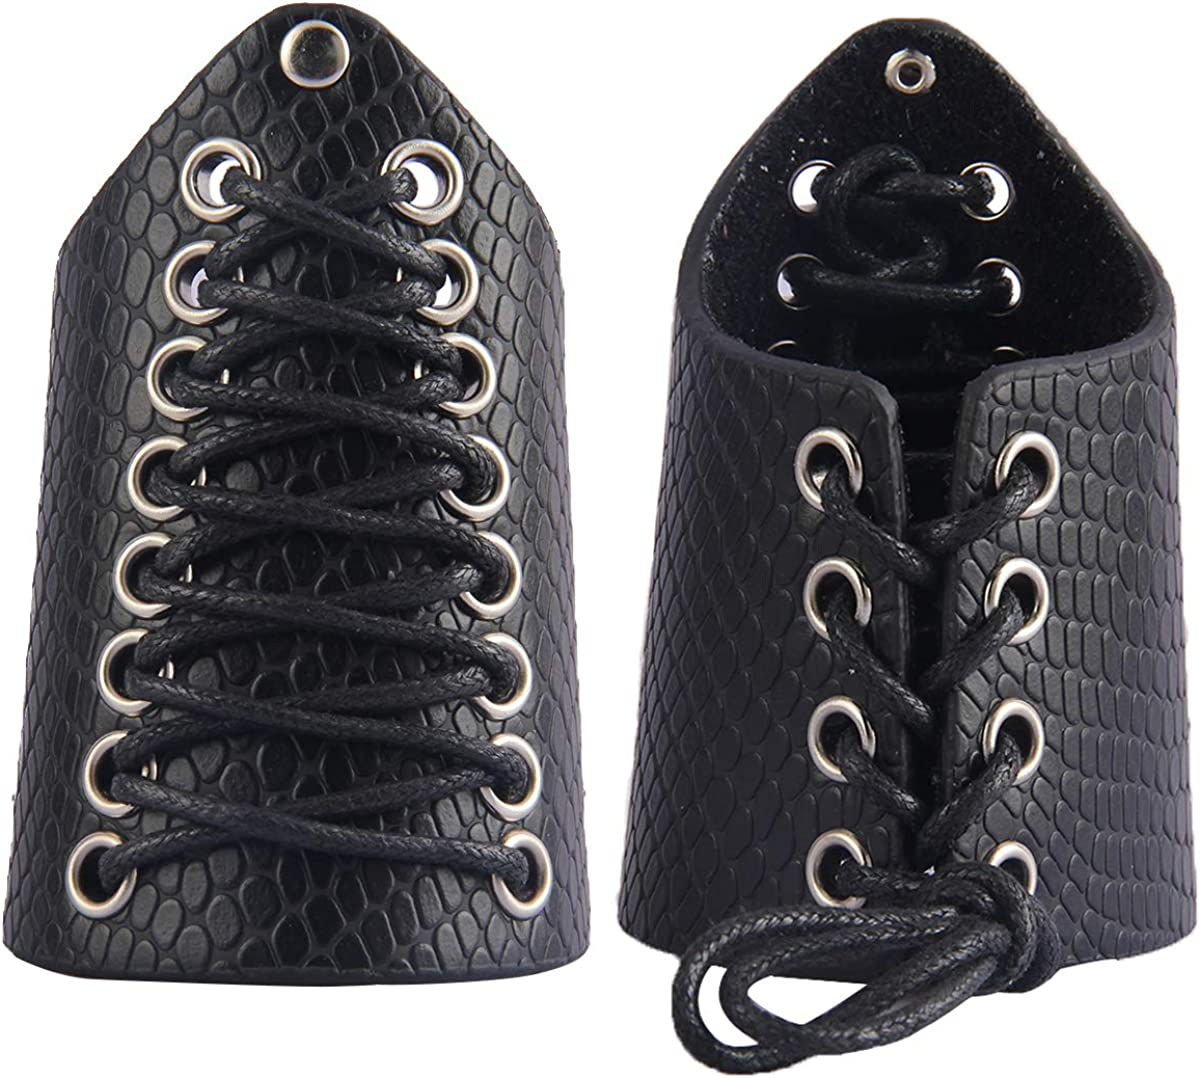 2Pcs Punk Medieval Bracers PU Leather Knight Gauntlet Wristband Wide Brace